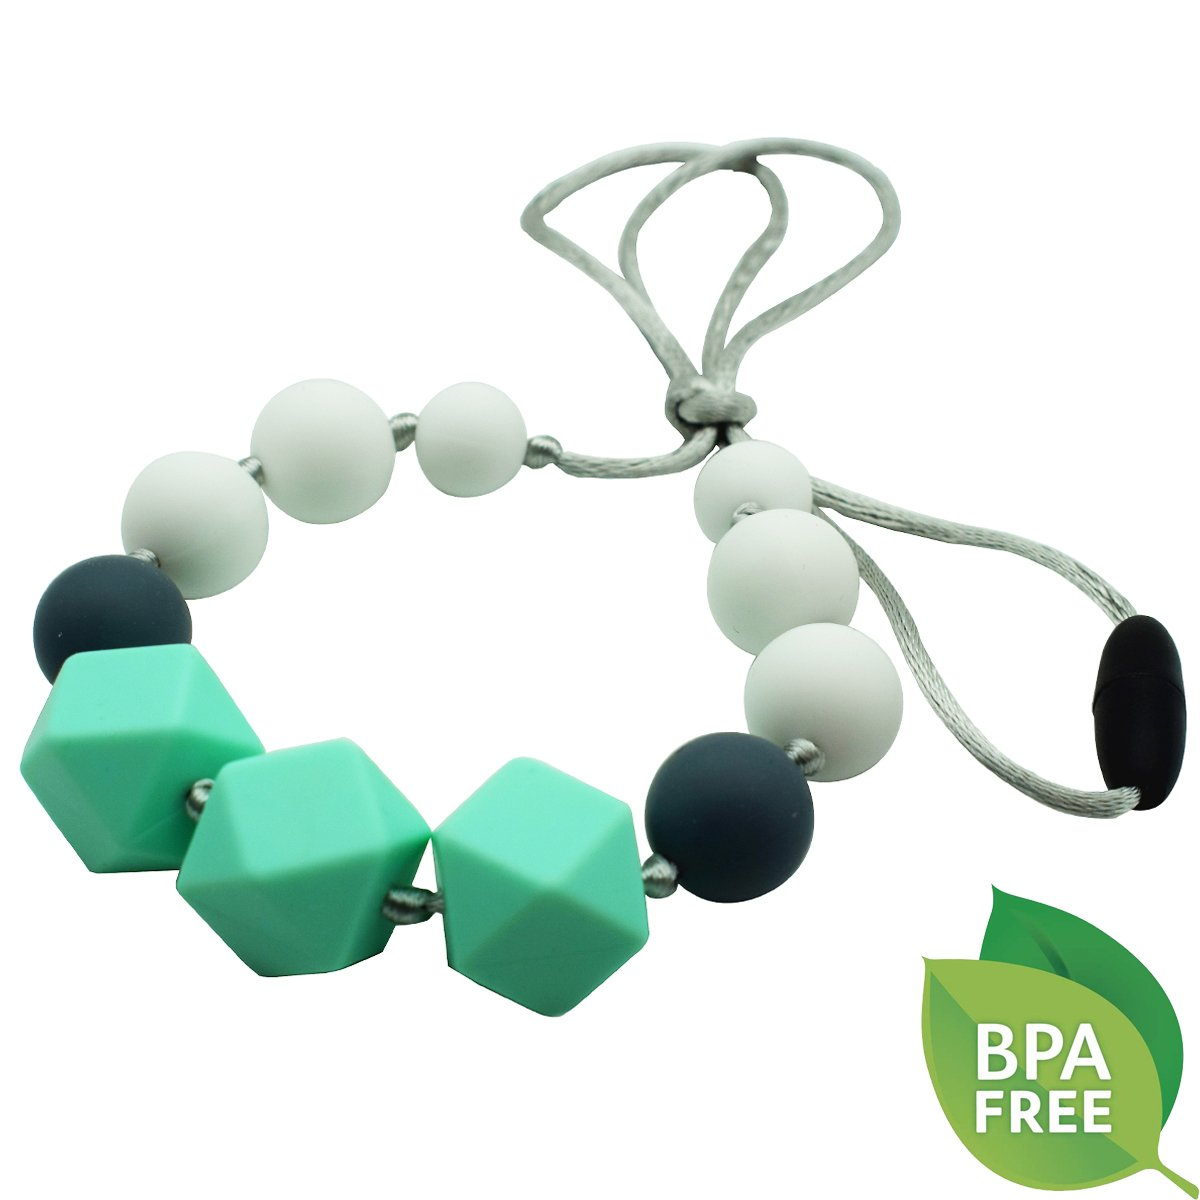 HENGSONG Silicone Teething Necklace for Babies with BPA-Free Beads Gray